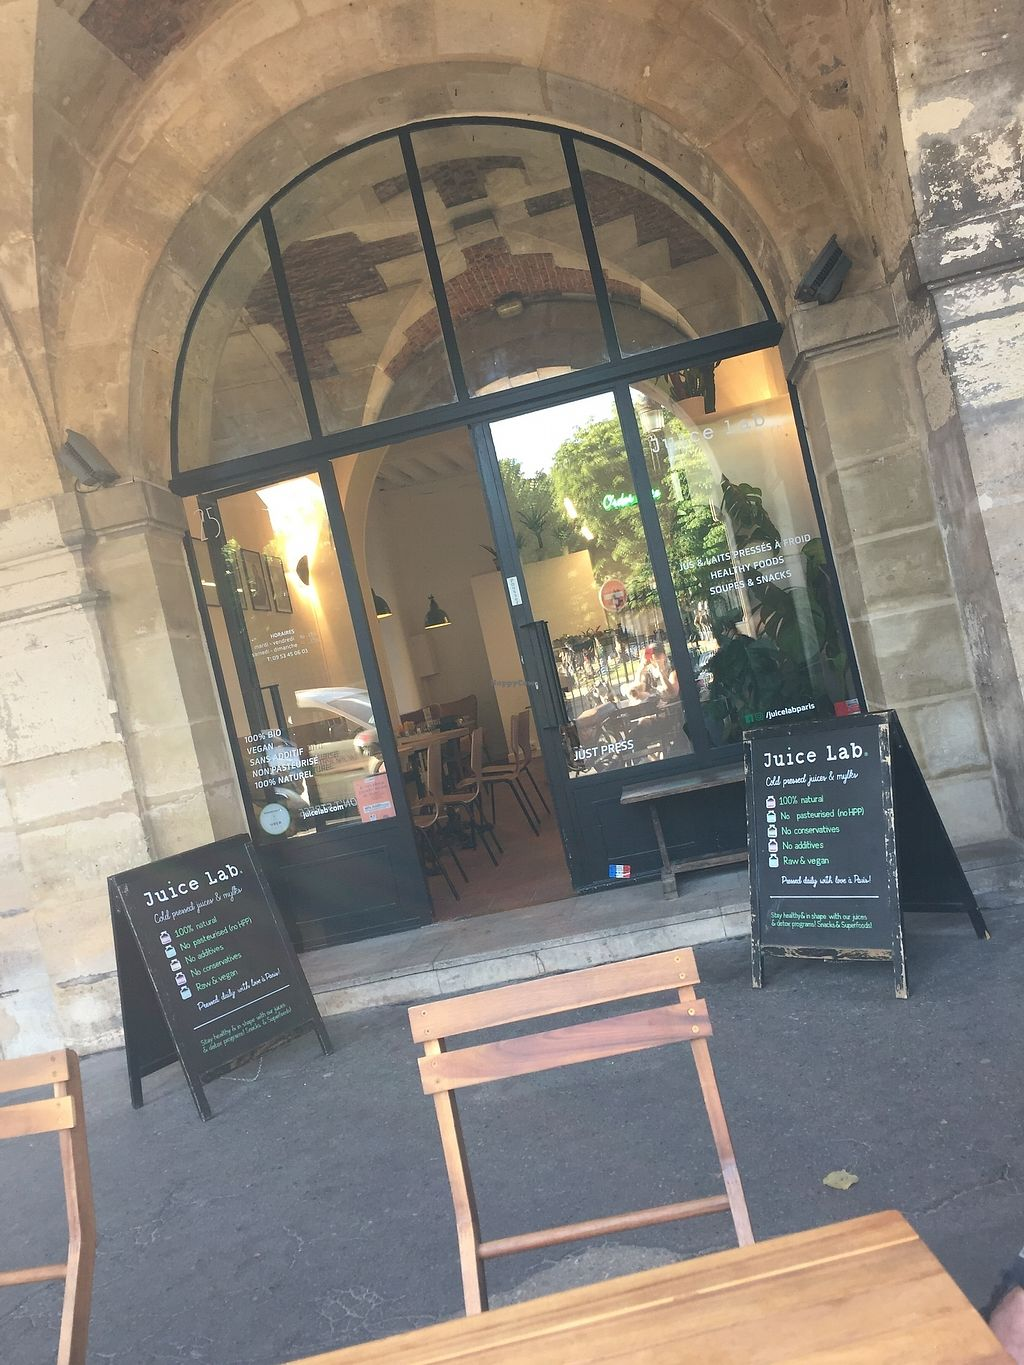 """Photo of Juice Lab - Place des Vosges  by <a href=""""/members/profile/TARAMCDONALD"""">TARAMCDONALD</a> <br/>Outside of juice bar, beautiful location.  Inside and outside seating available <br/> July 3, 2017  - <a href='/contact/abuse/image/95233/276289'>Report</a>"""